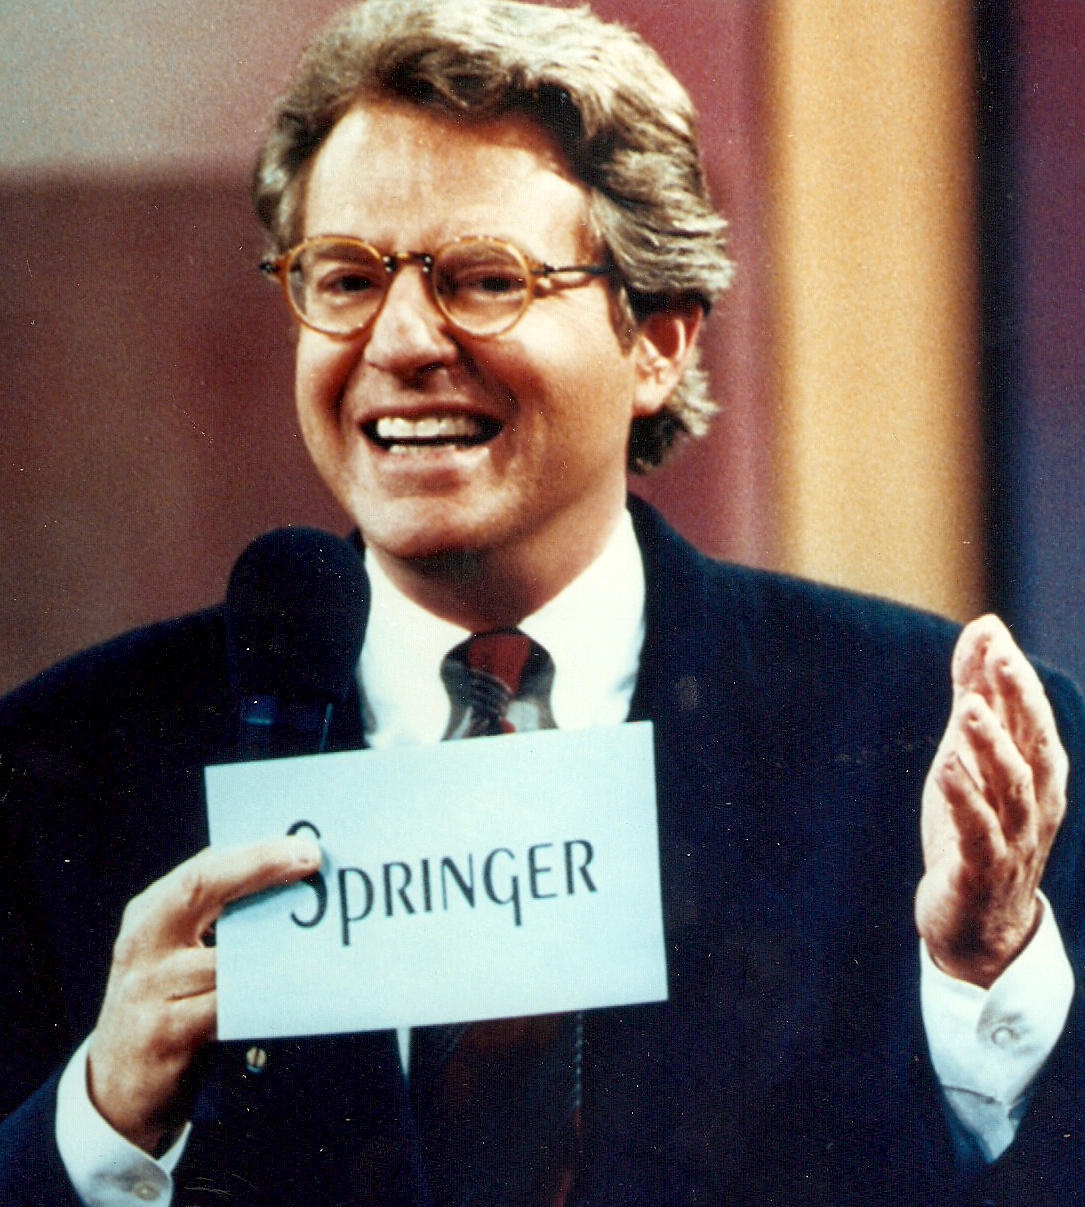 jerry springer not the father